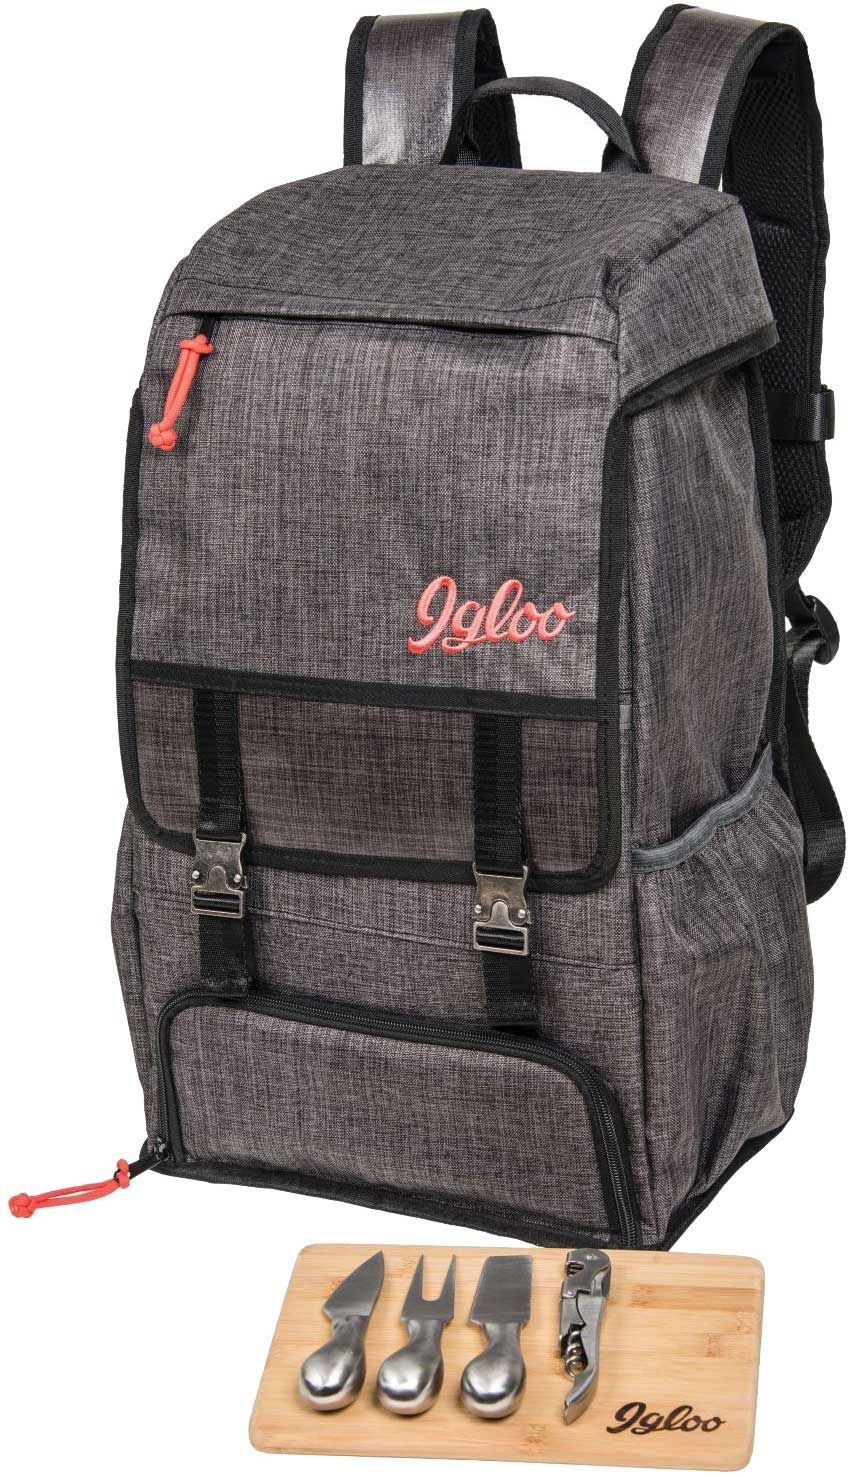 igloo daytripper backpack cooler - Backpack Coolers